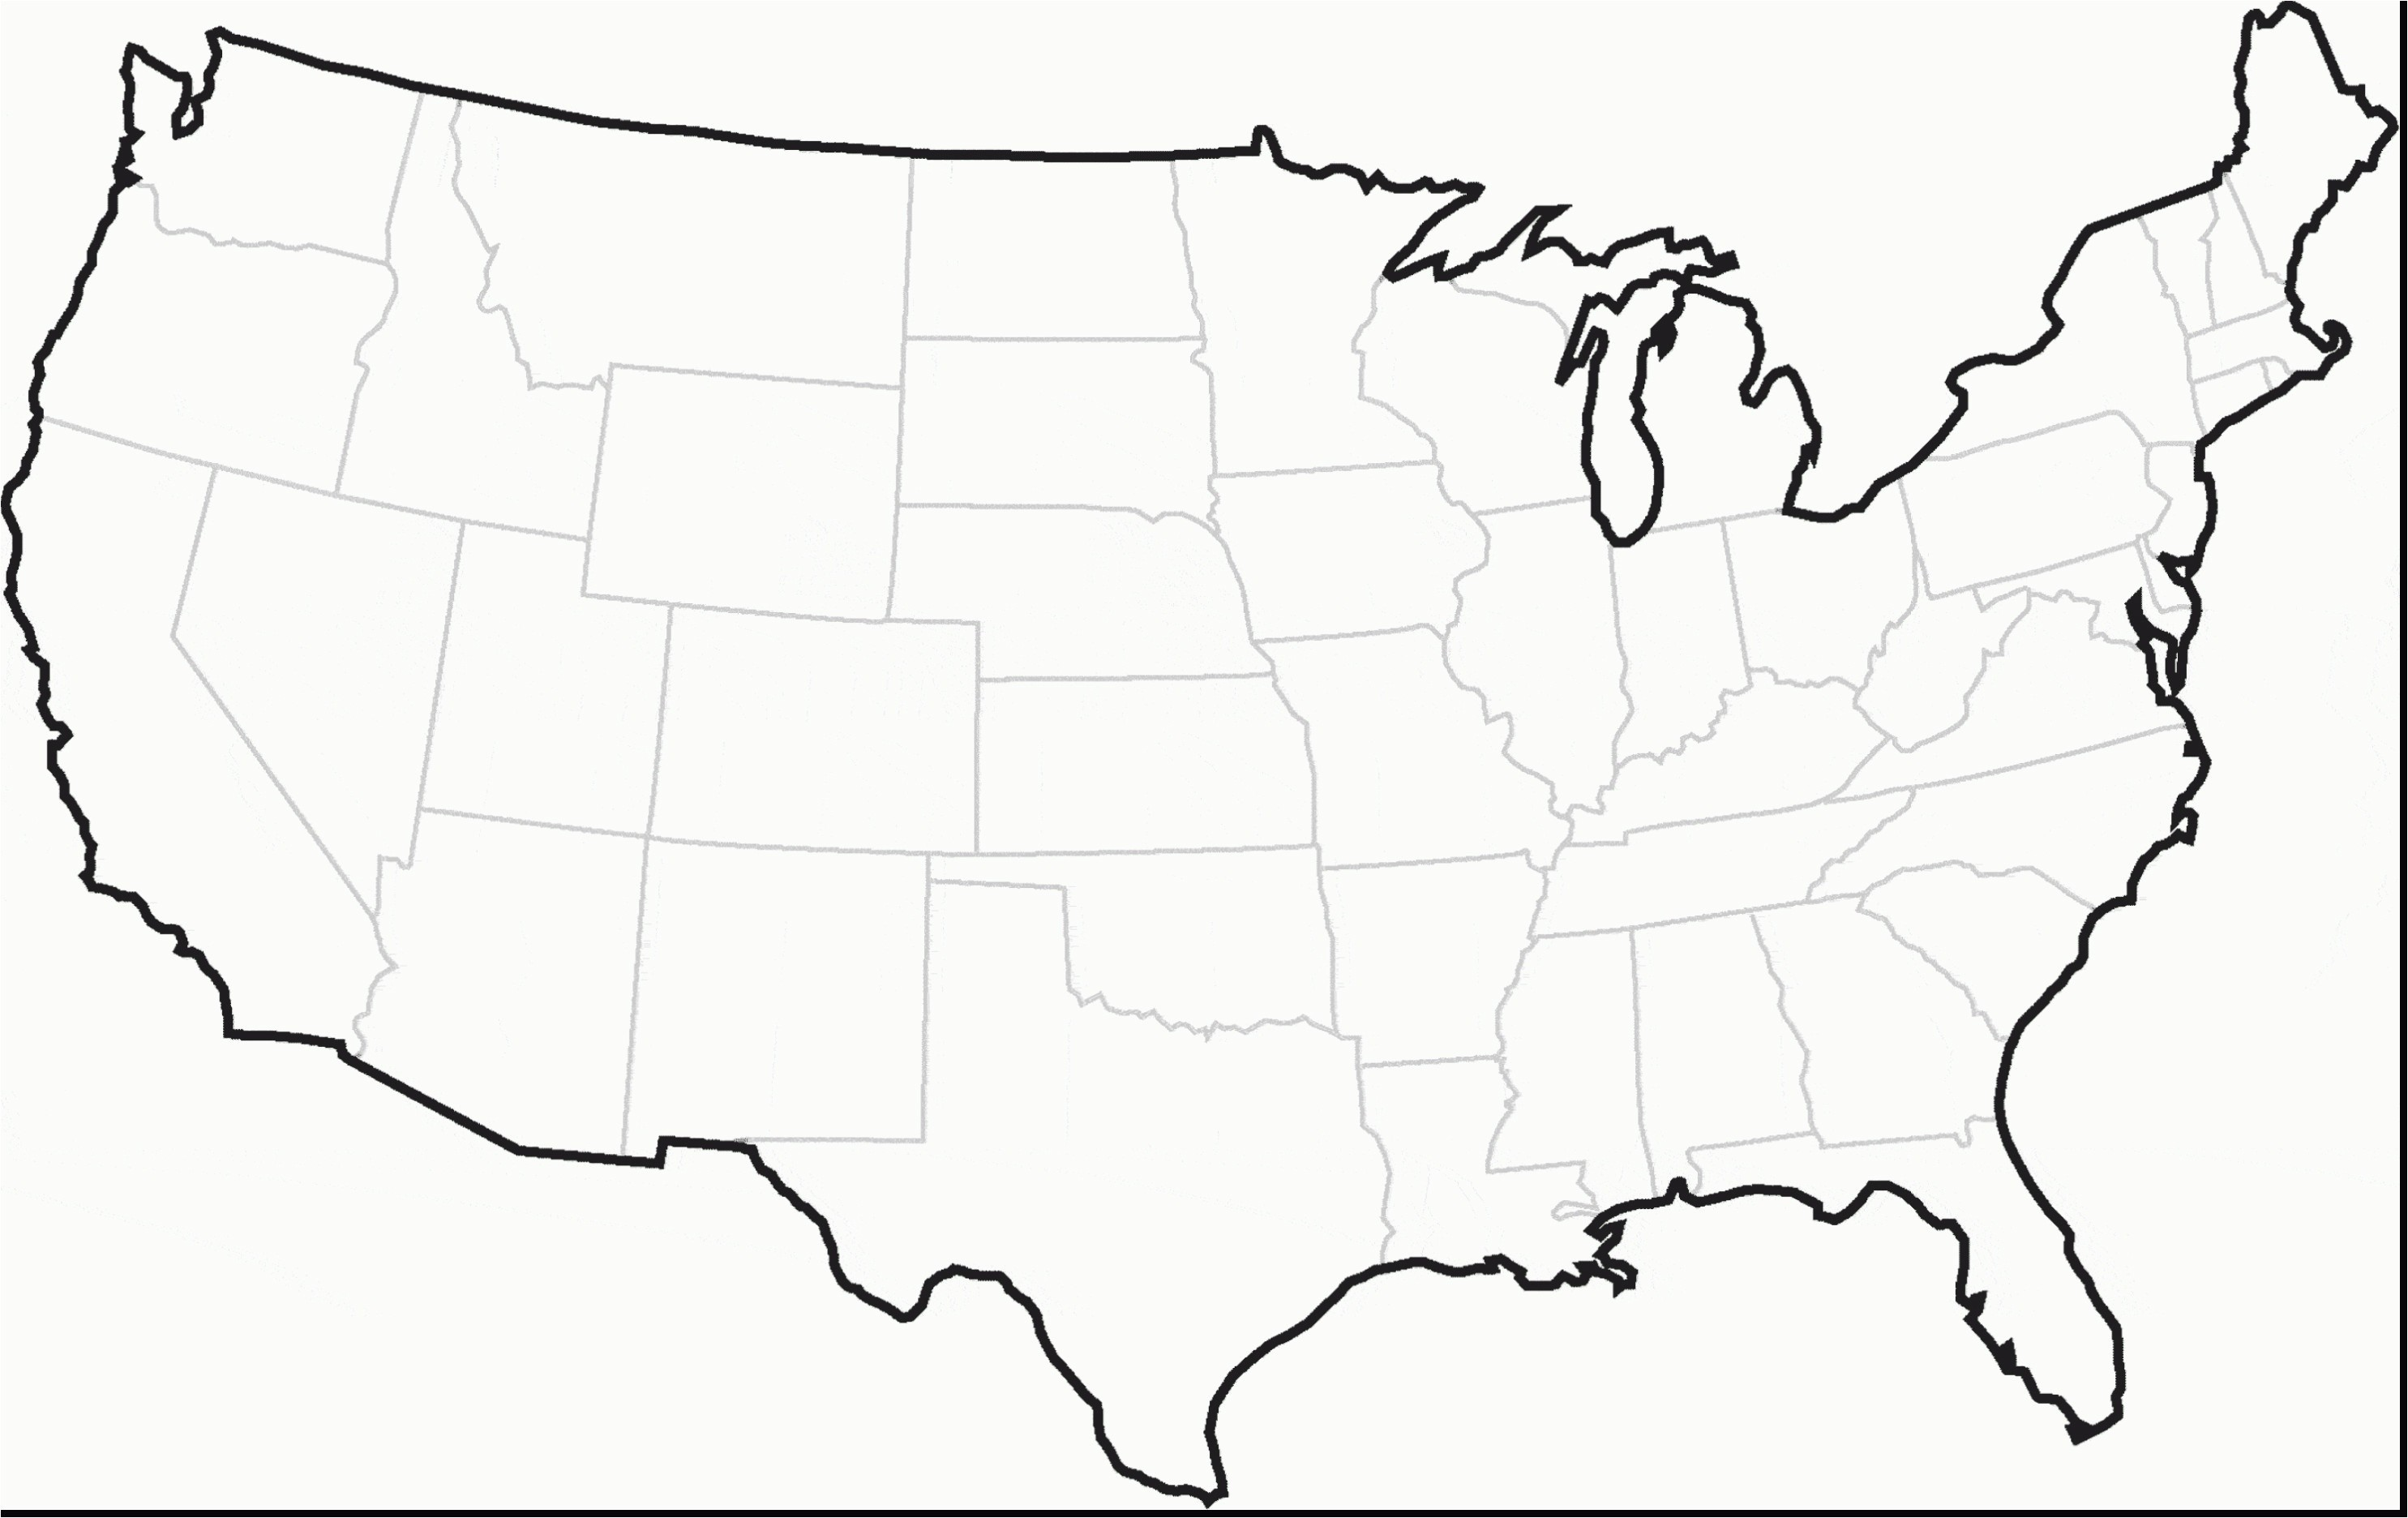 Us Map Vector at GetDrawings.com | Free for personal use Us ... Illustrator Map Of Usa on microsoft powerpoint map of usa, hand drawn map of usa, continent map of usa, vector map of usa, corel draw map of usa, word map of usa, illustration map of usa, nuke map of usa, county map of usa, excel map of usa,